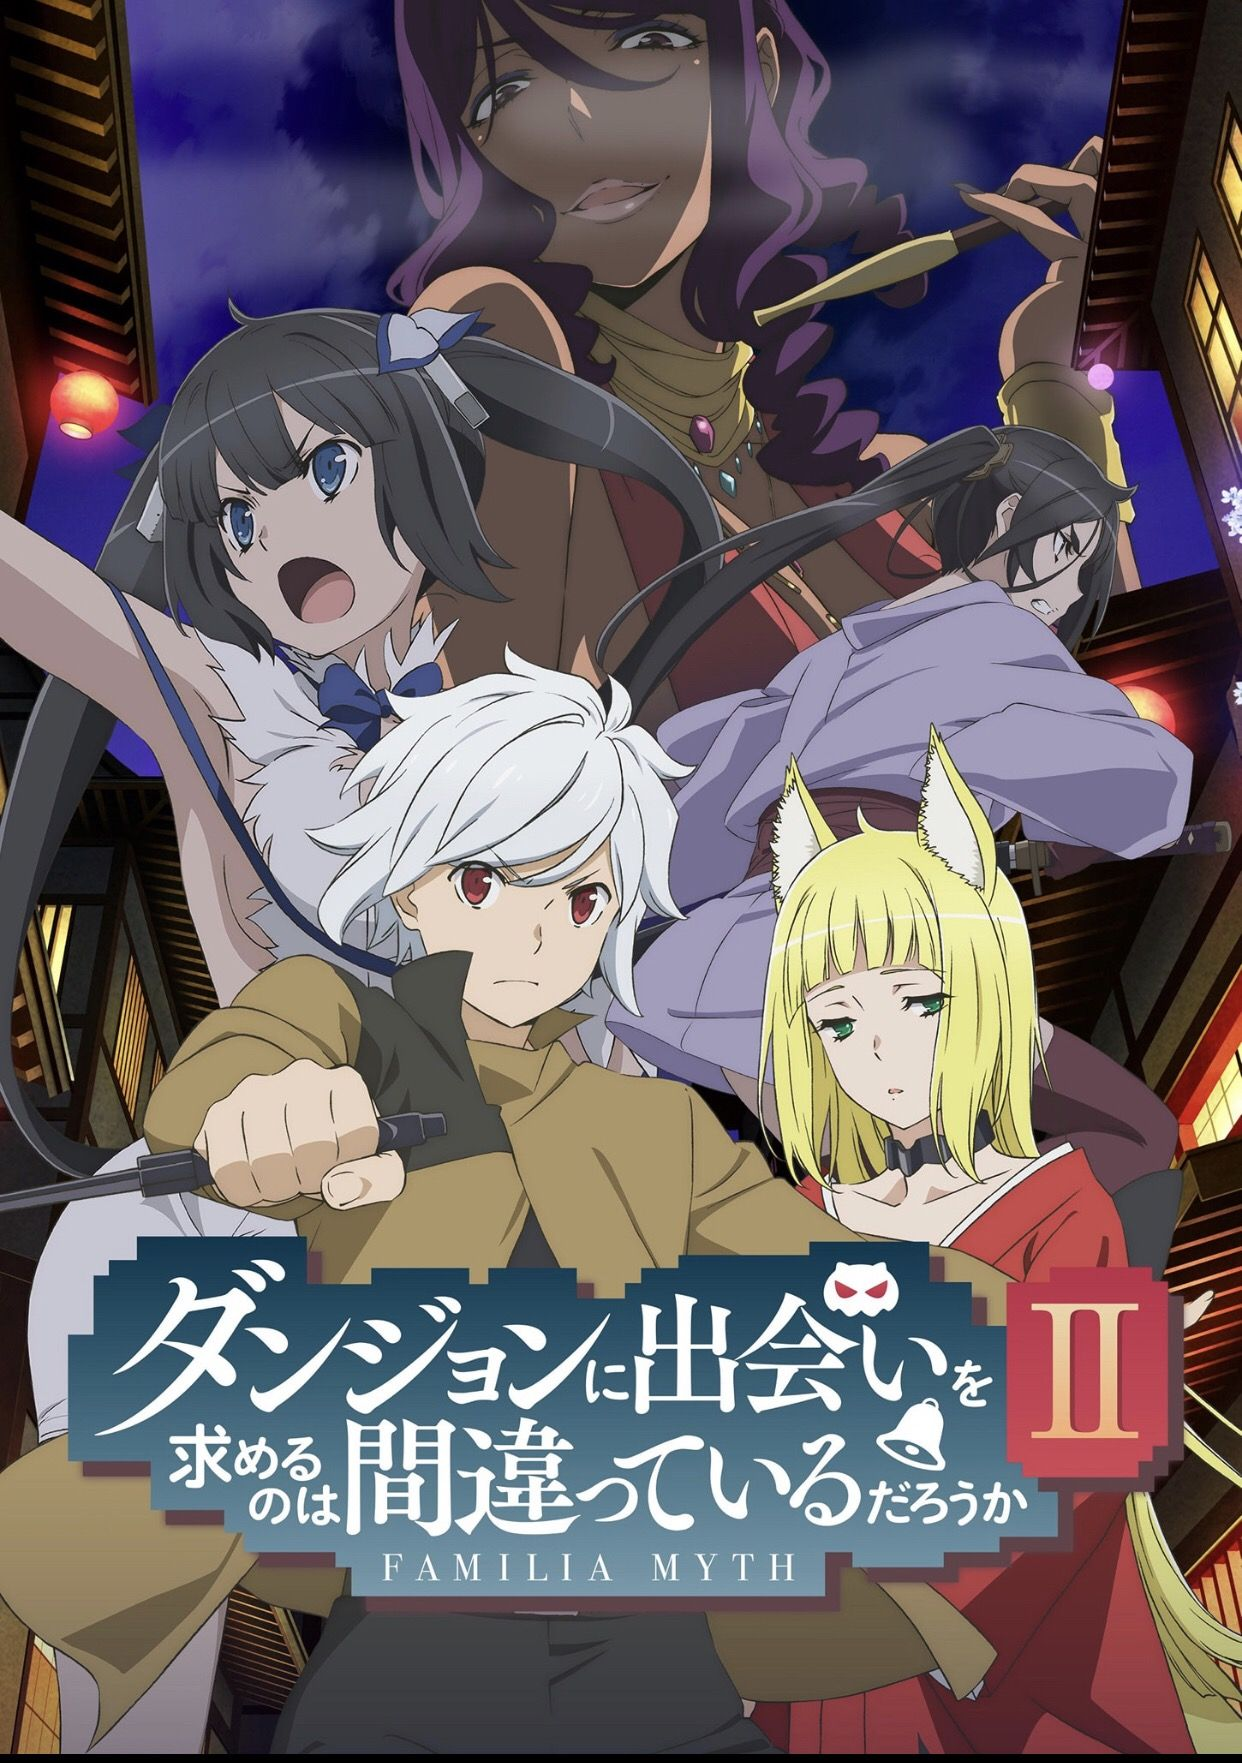 Anime Danmachi Season 2 Release Date On July 12th With